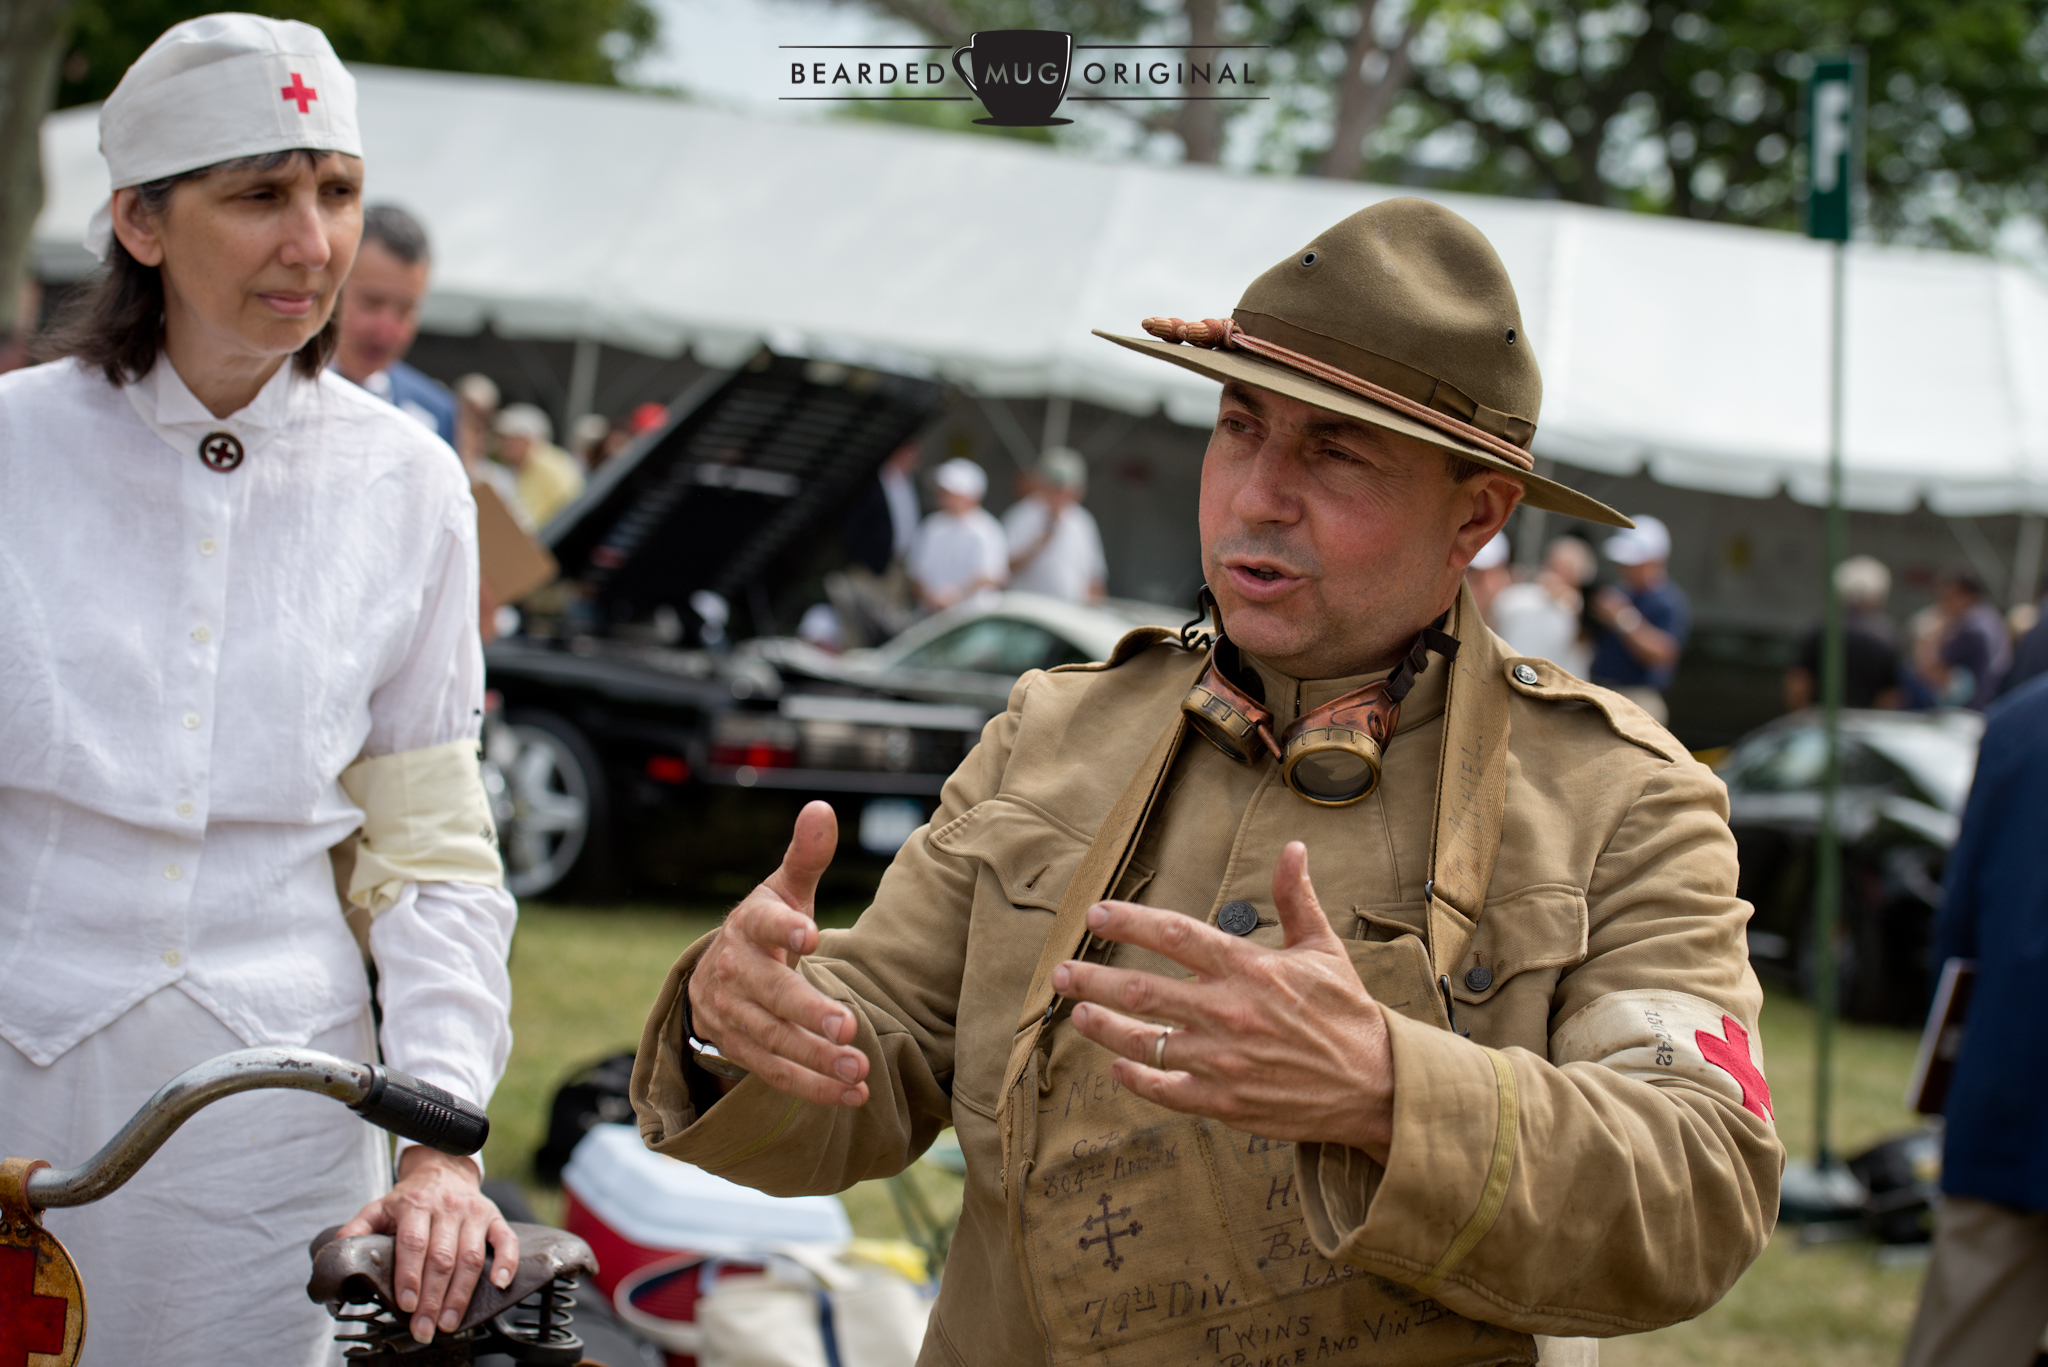 John here, owner of the 1917 Triumph Model H, is a collector of all things vintage and can talk shop on numerous topics for hours on end. His outfit was period-correct, right down the riding boots.